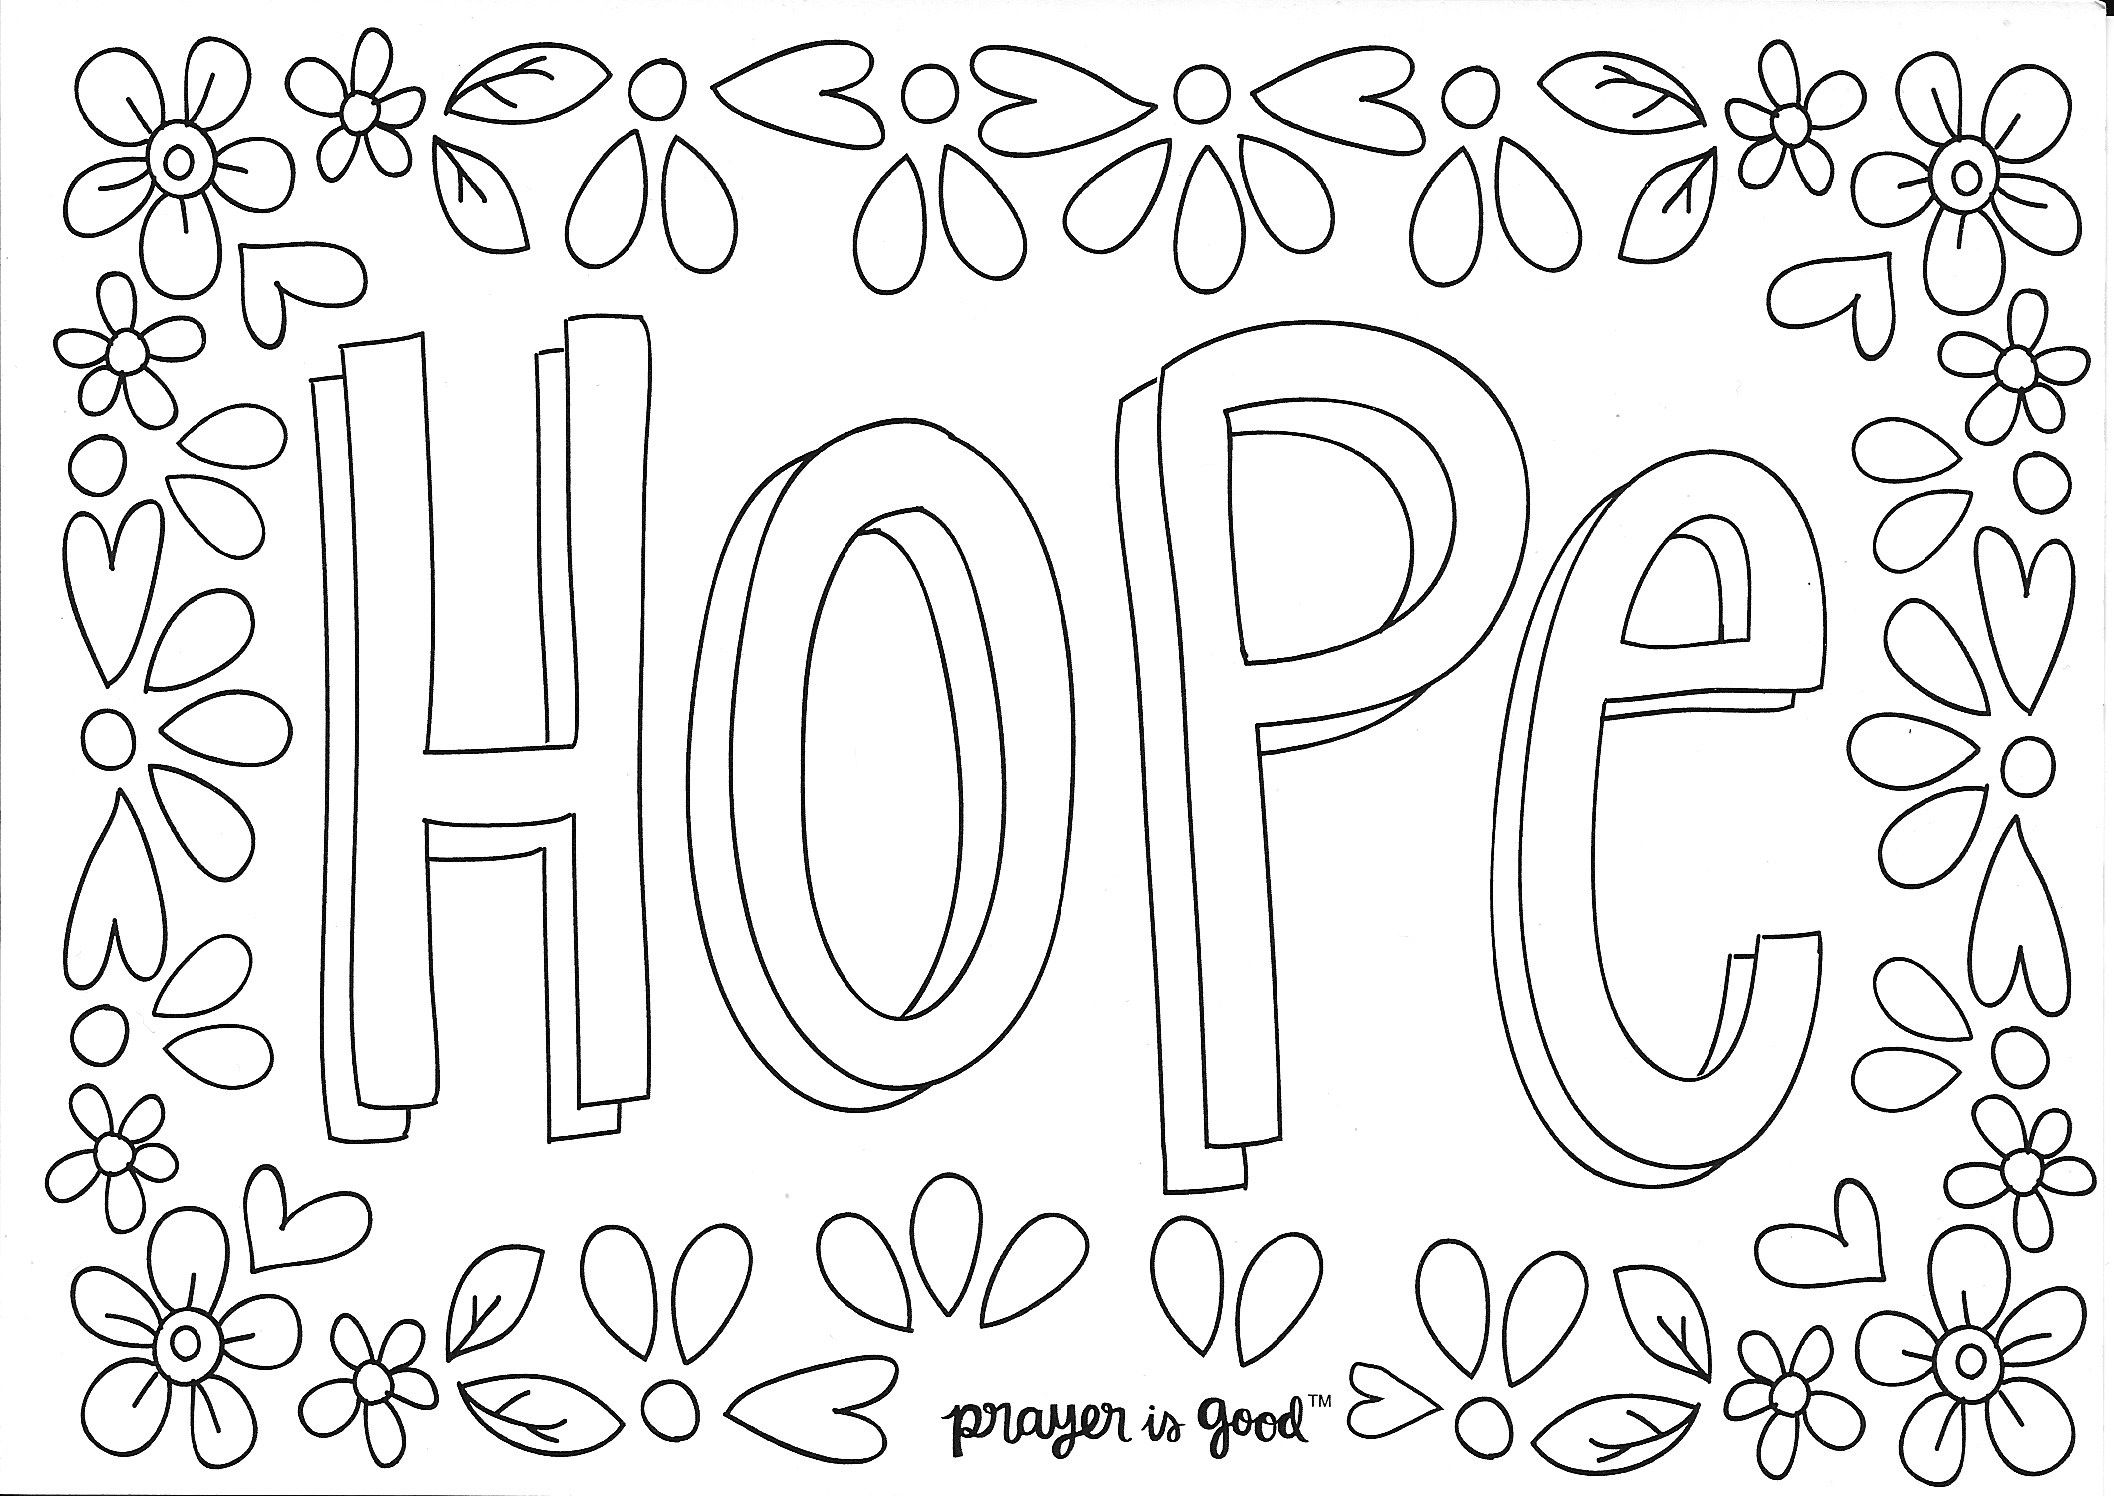 This is an image of Peaceful Hope Coloring Pages Printable